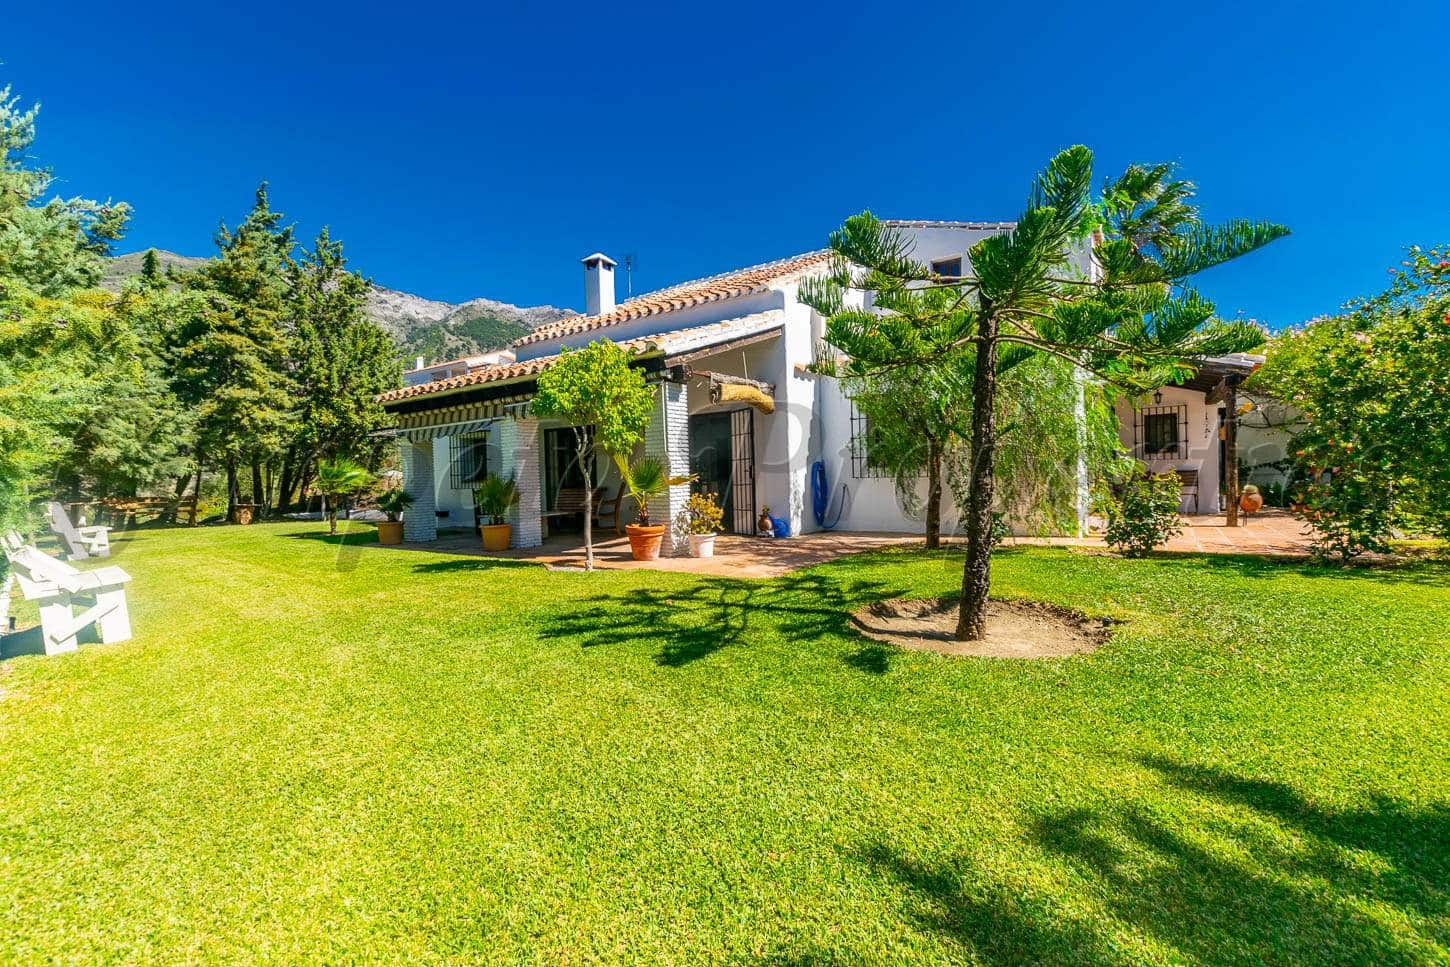 4 bedroom Finca/Country House for sale in Canillas de Aceituno with pool - € 695,000 (Ref: 4813591)